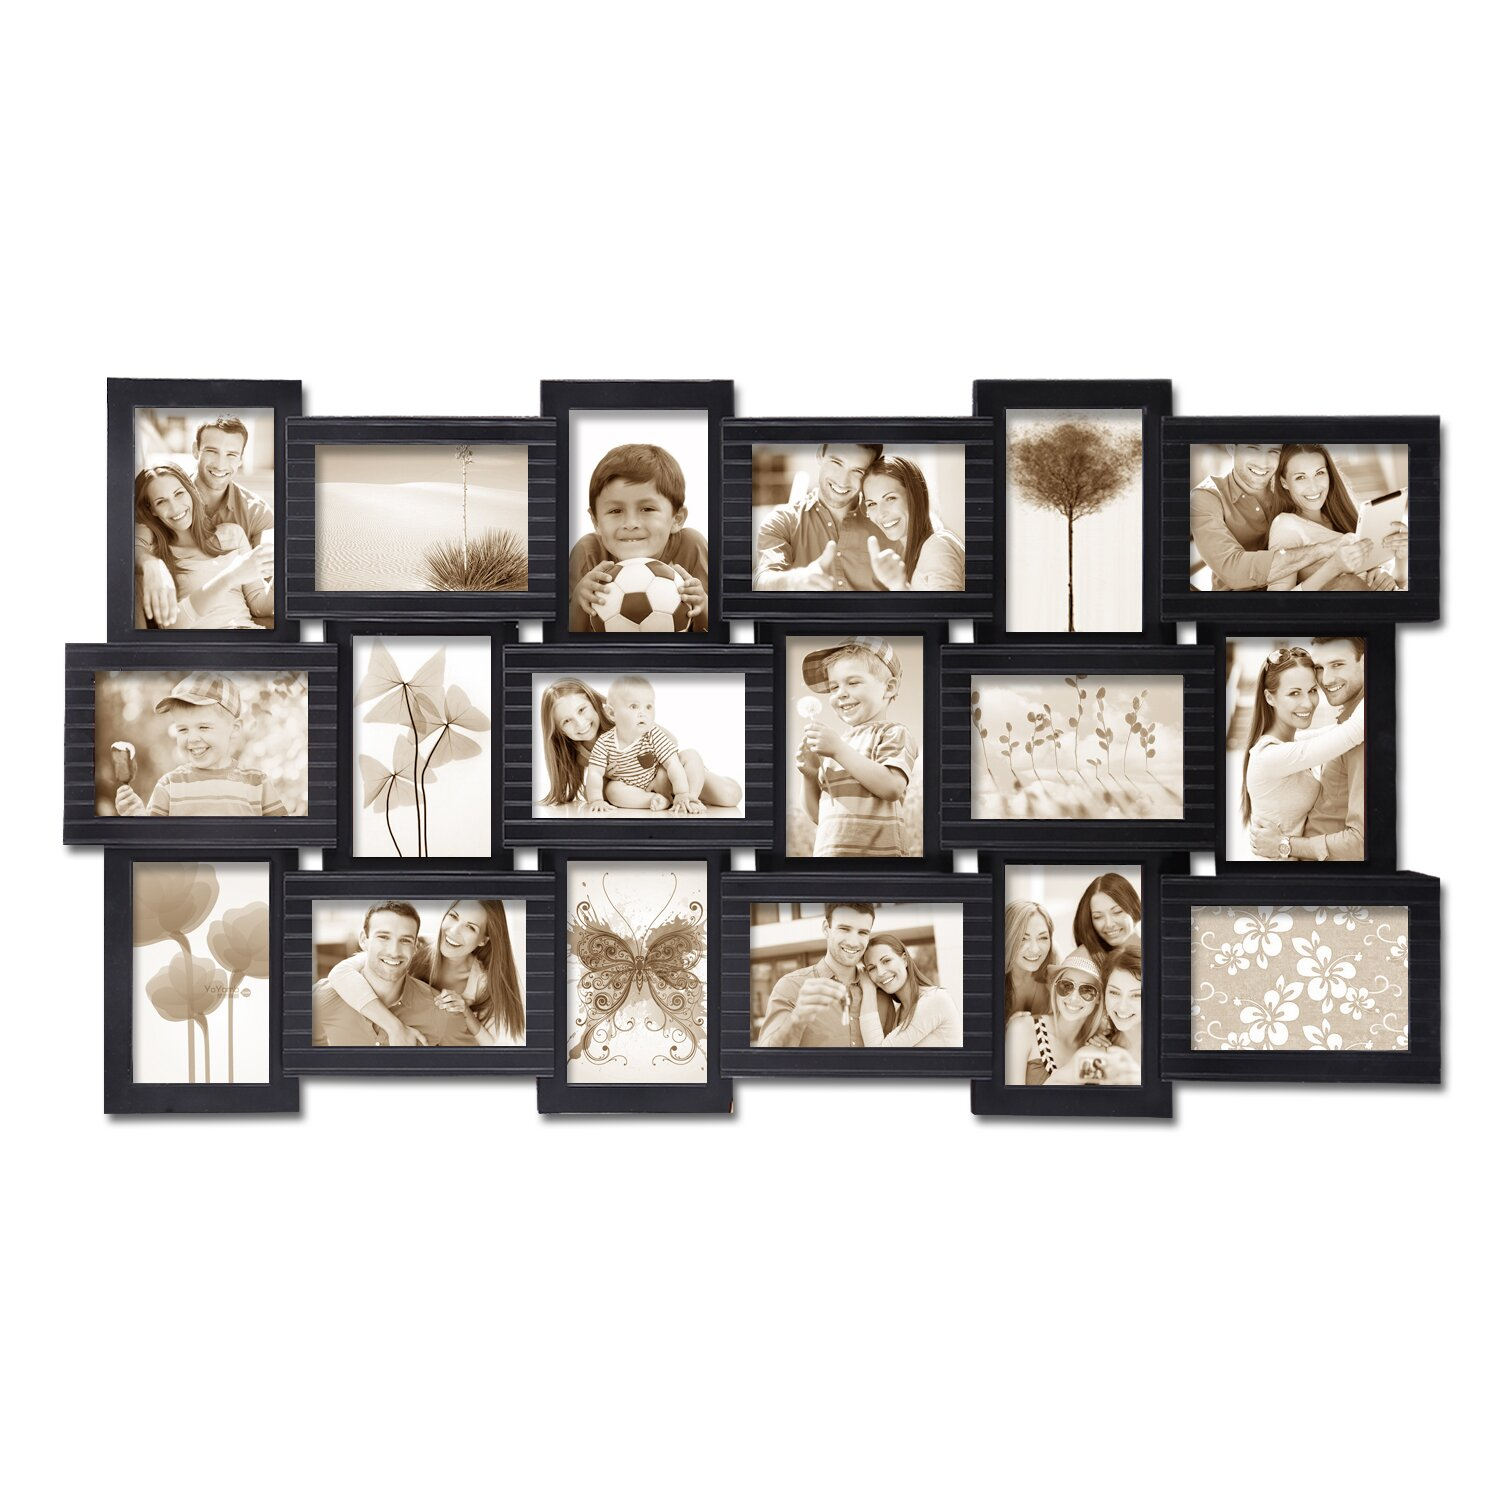 adecotrading 18 opening plastic photo collage wall hanging. Black Bedroom Furniture Sets. Home Design Ideas